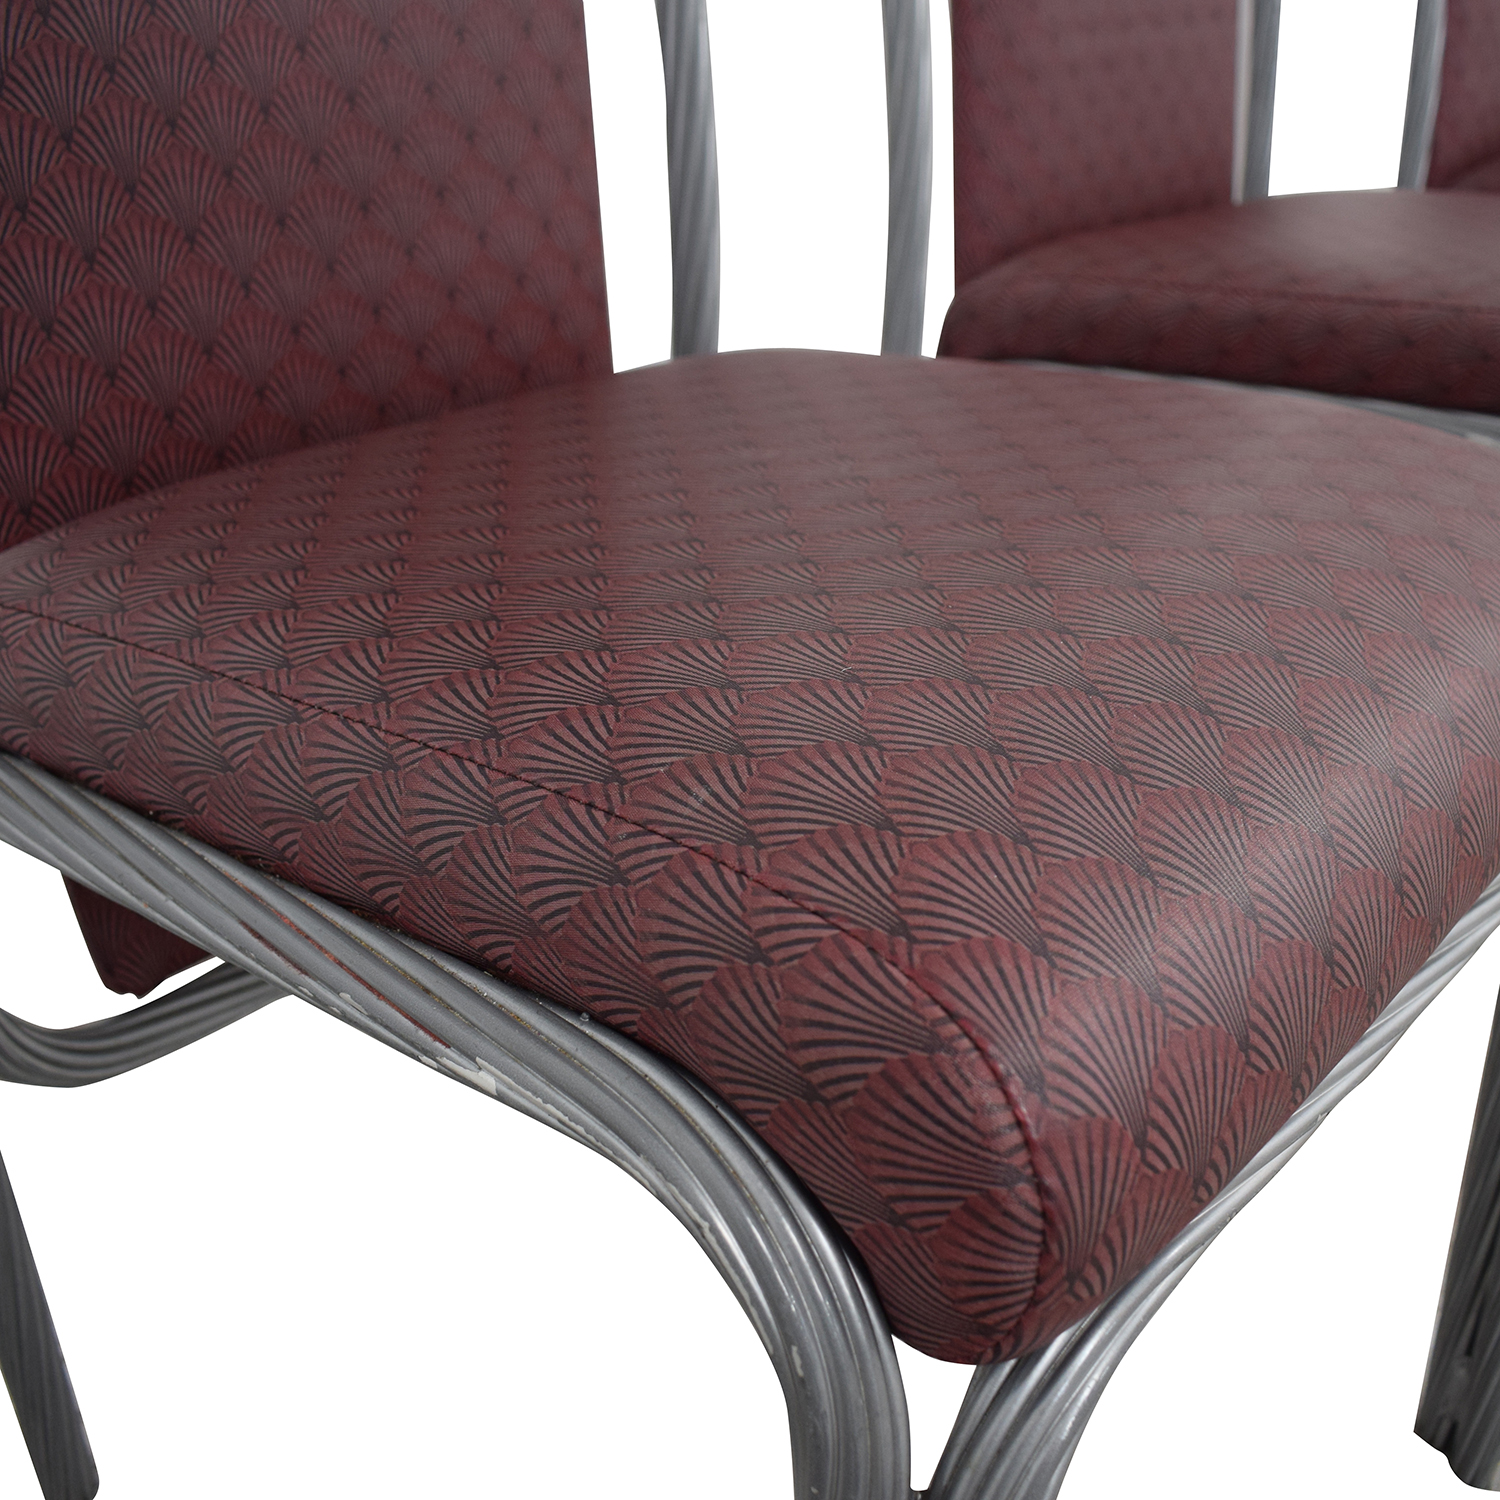 Precision Furniture Precision Furniture Purple Dinette Chairs for sale